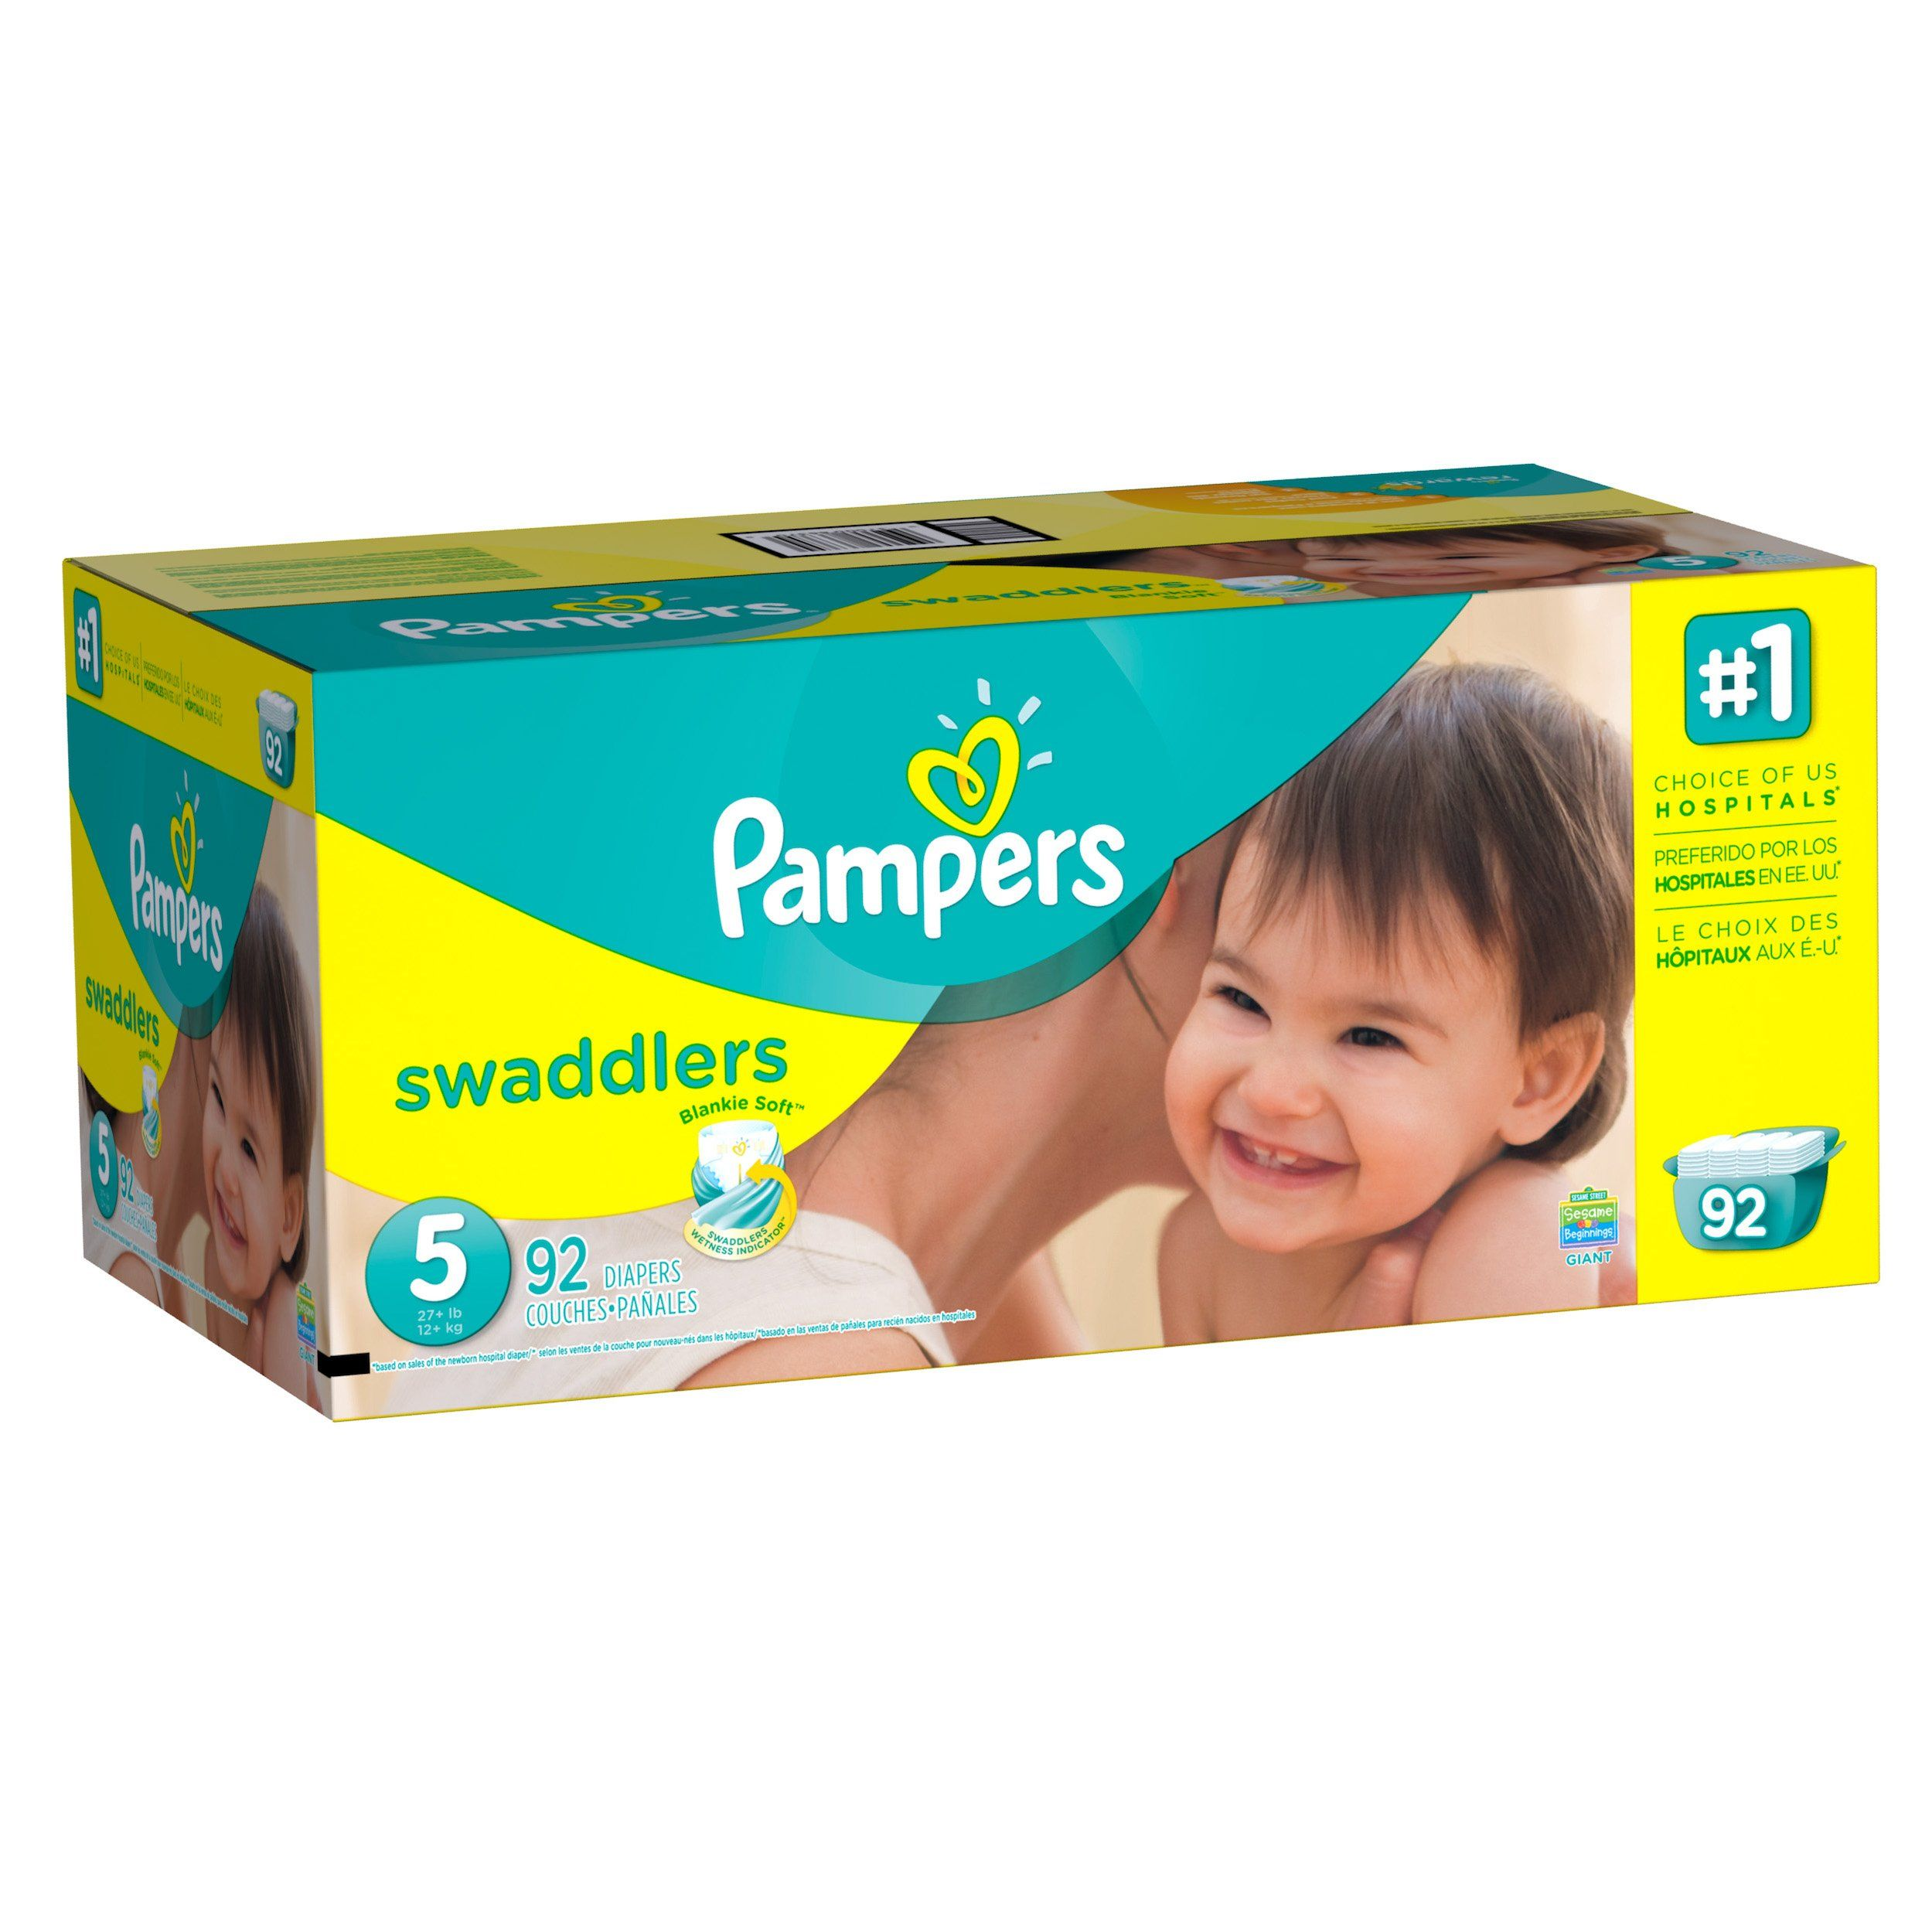 Pampers Swaddlers Disposable Diapers Size 5 92 Count GIANT ...